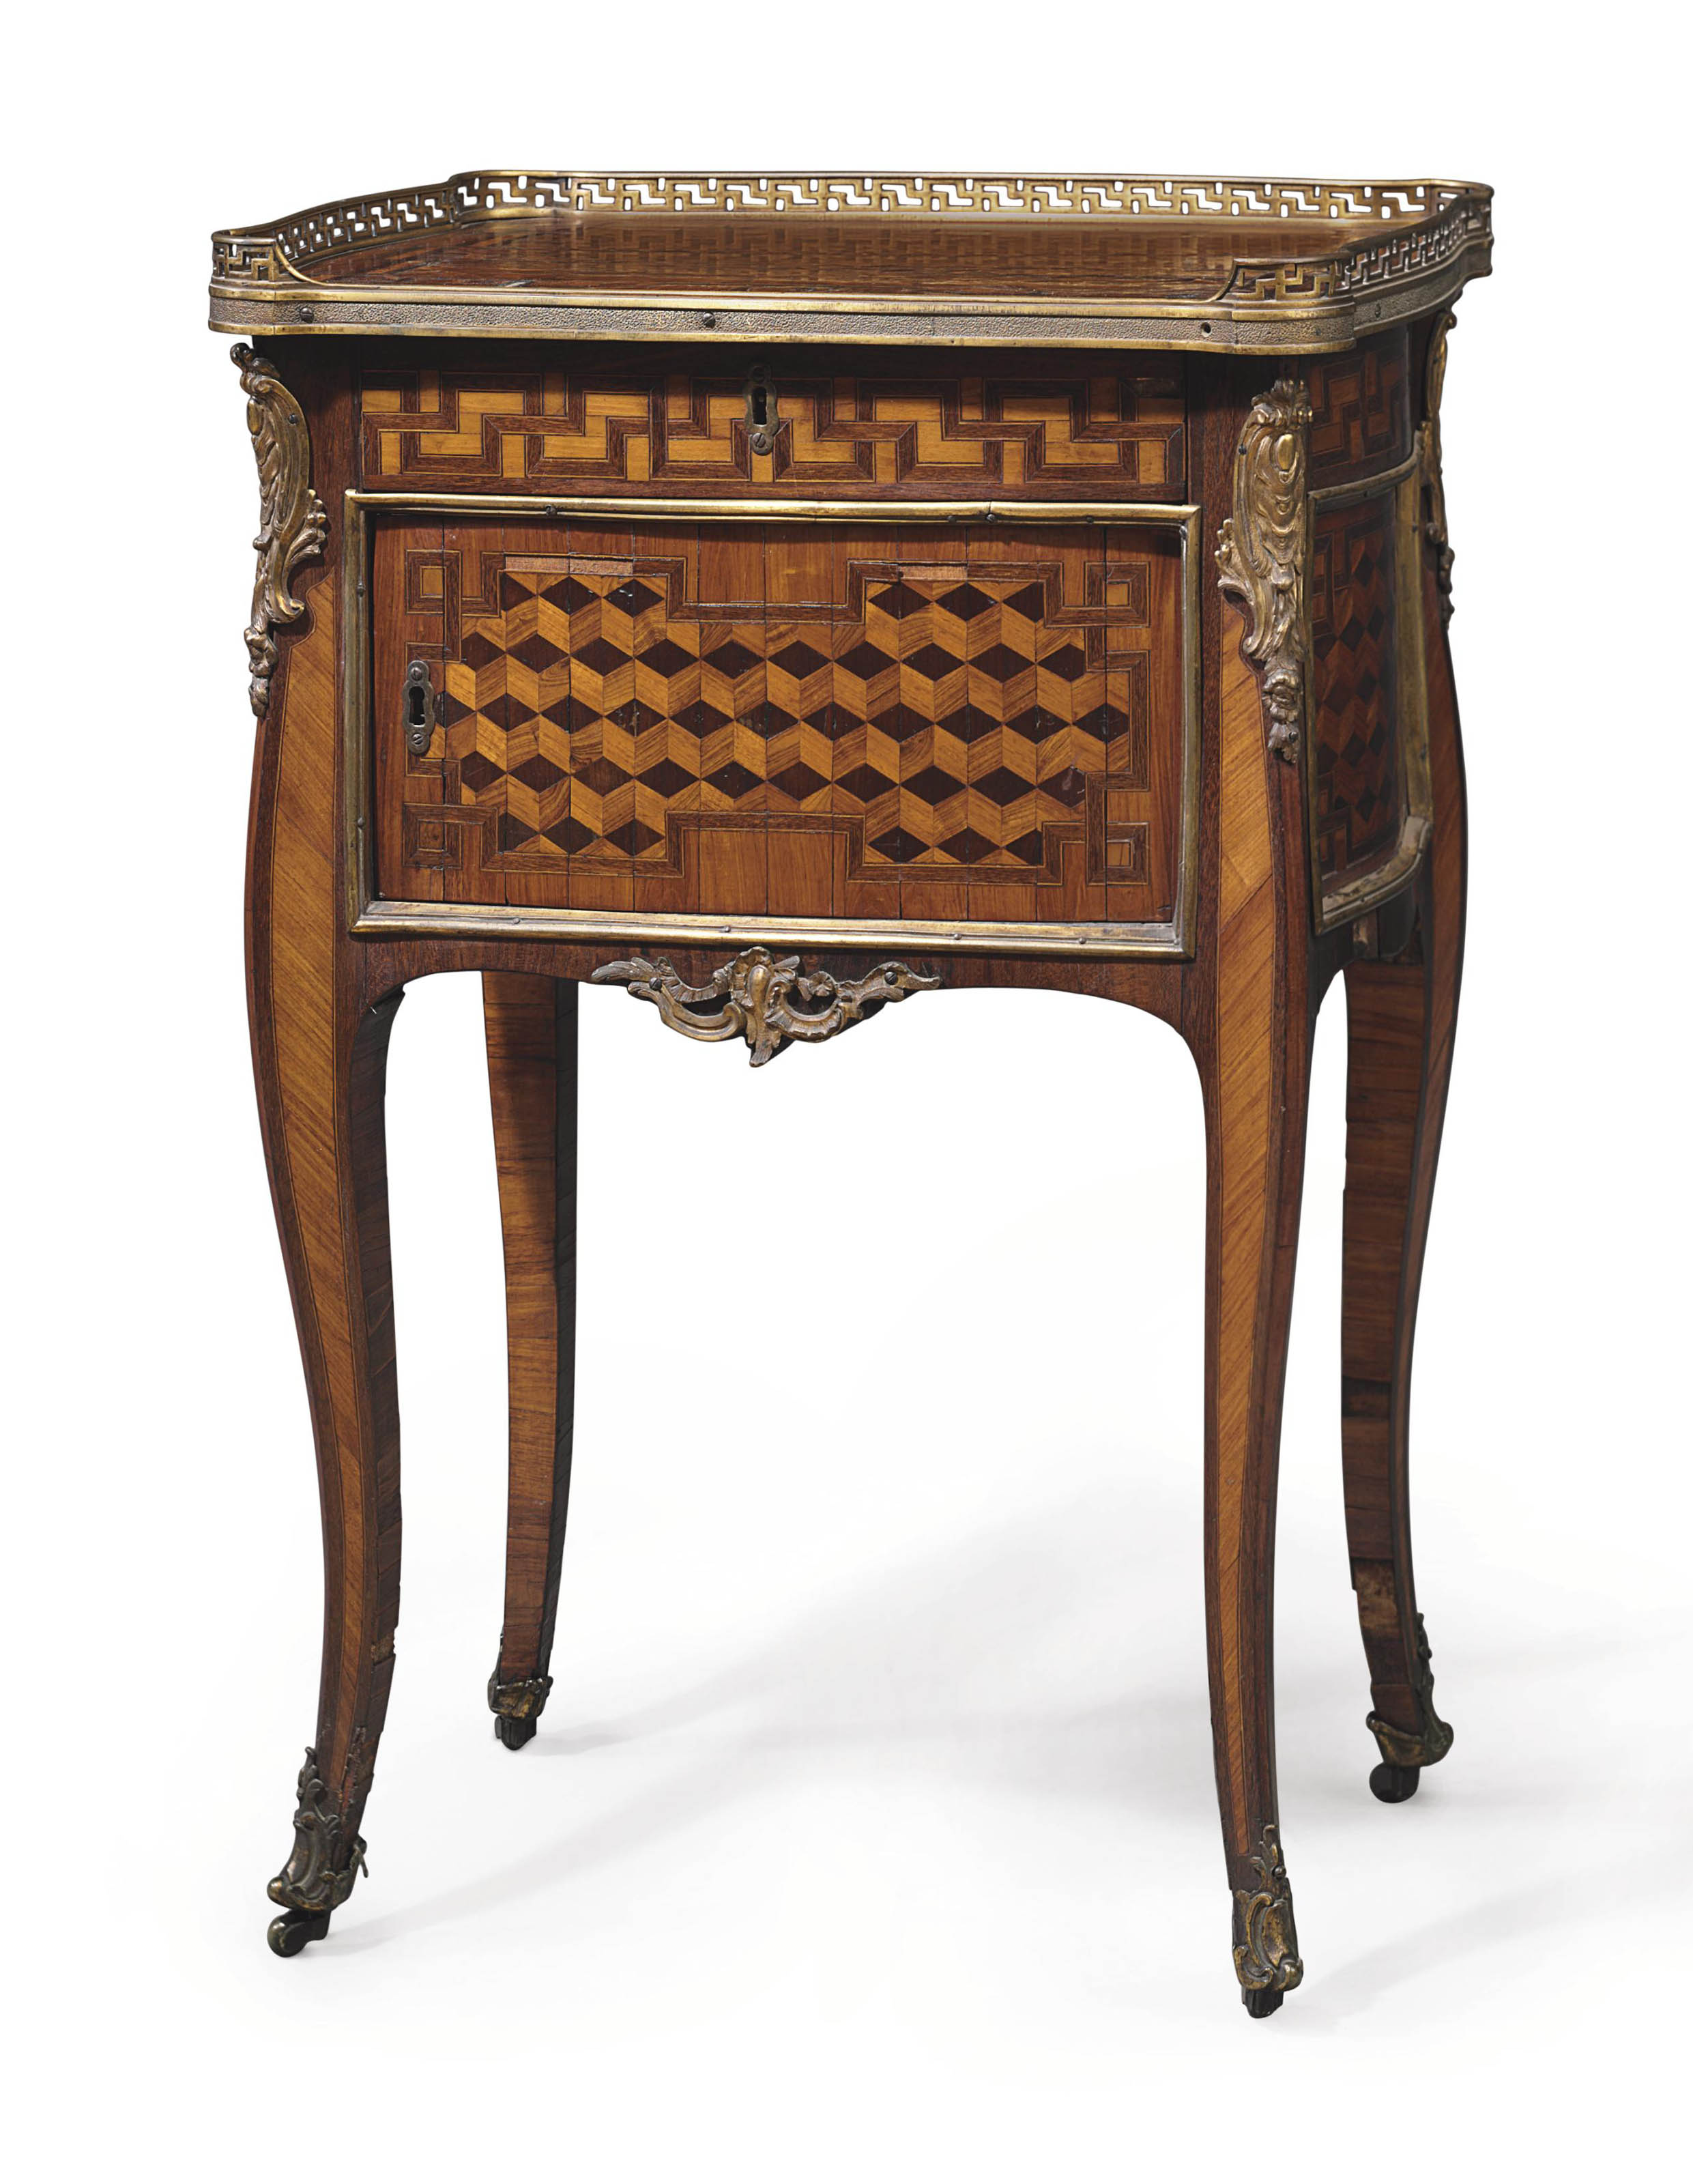 A LATE LOUIS XV AMARANTH, TULIPWOOD AND PARQUETRY OCCASIONAL TABLE